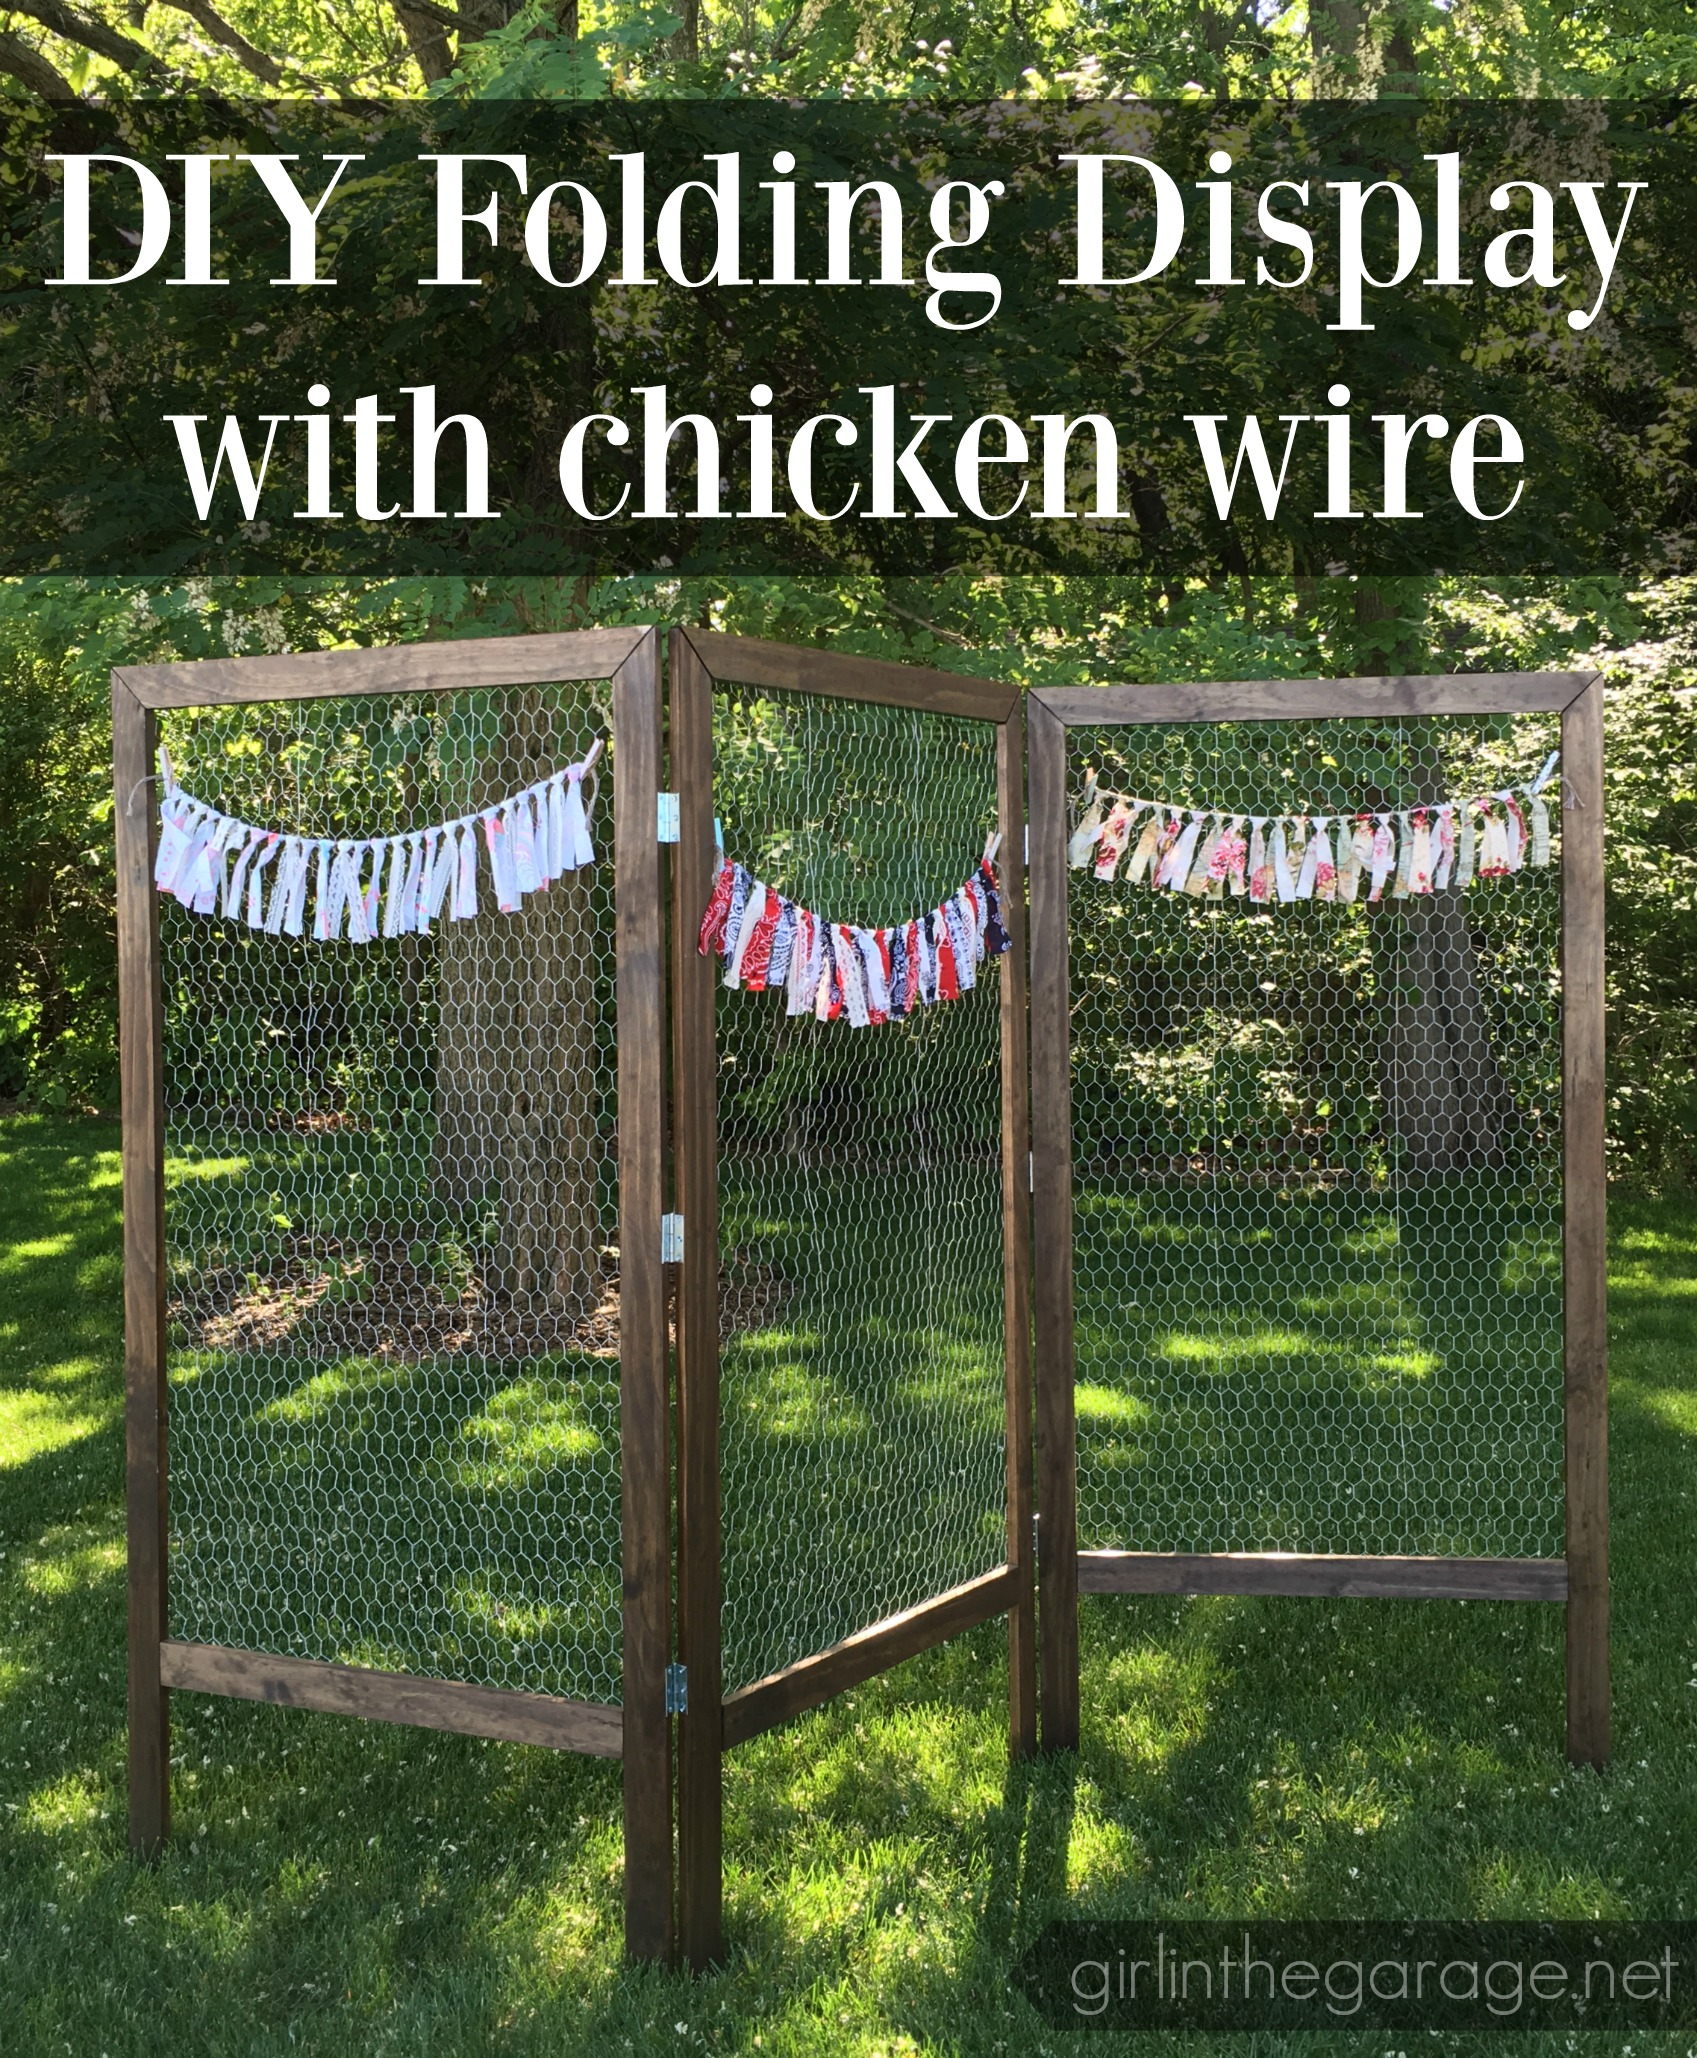 How to Build a DIY Folding Display with Chicken Wire - by Girl (and Guy) in the Garage